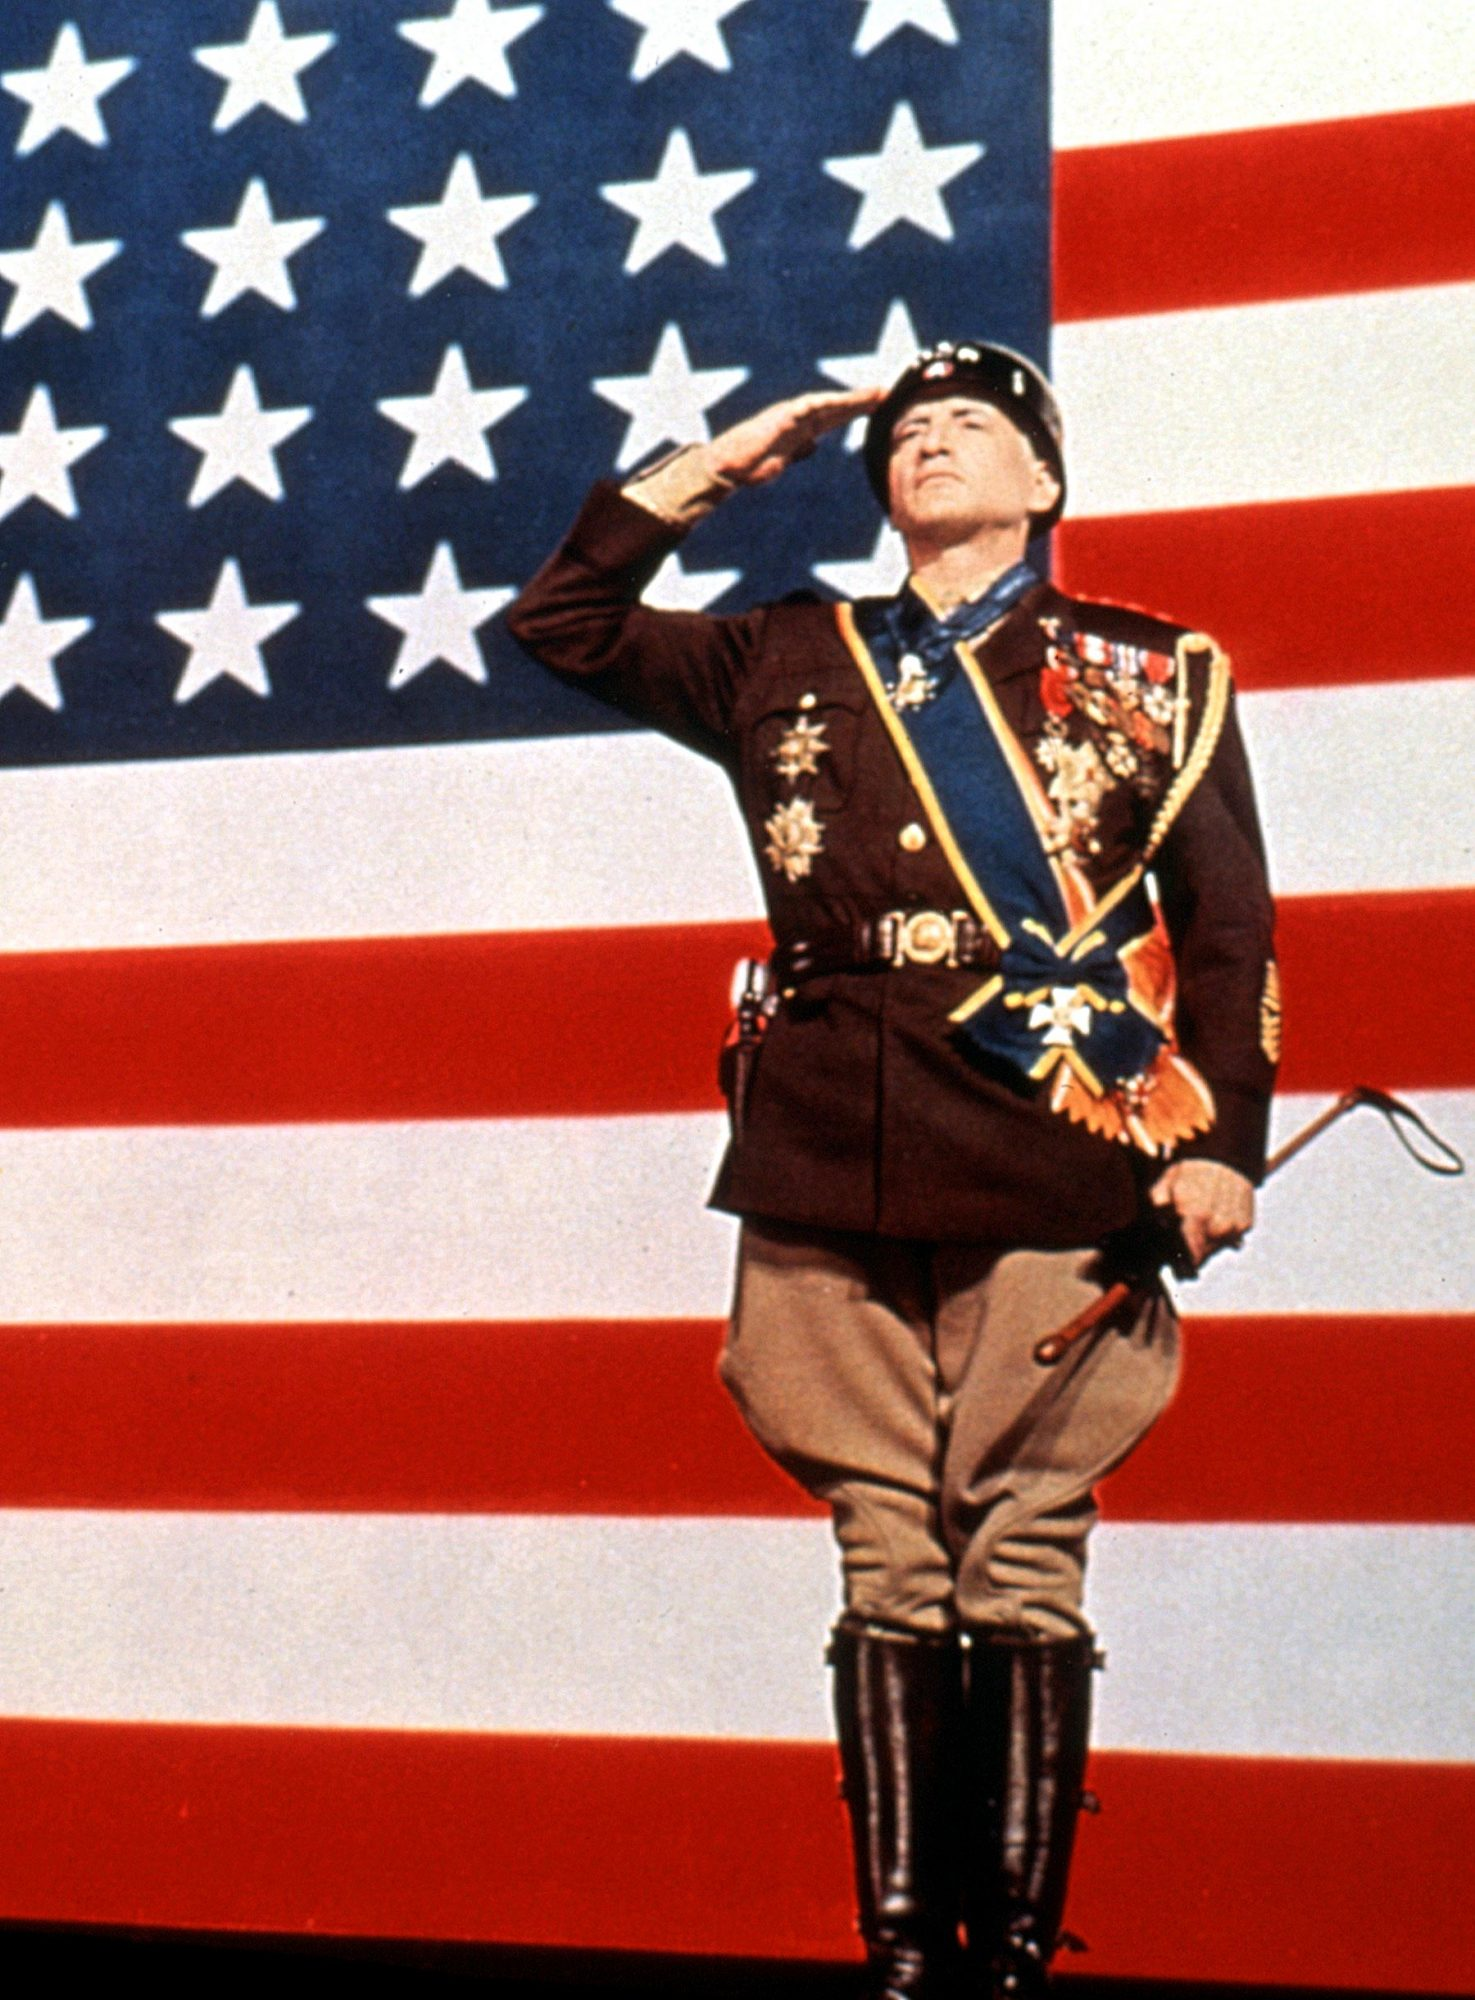 PATTON, George C. Scott, 1970, TM and Copyright (c)20th Century Fox Film Corp. All rights reserved.